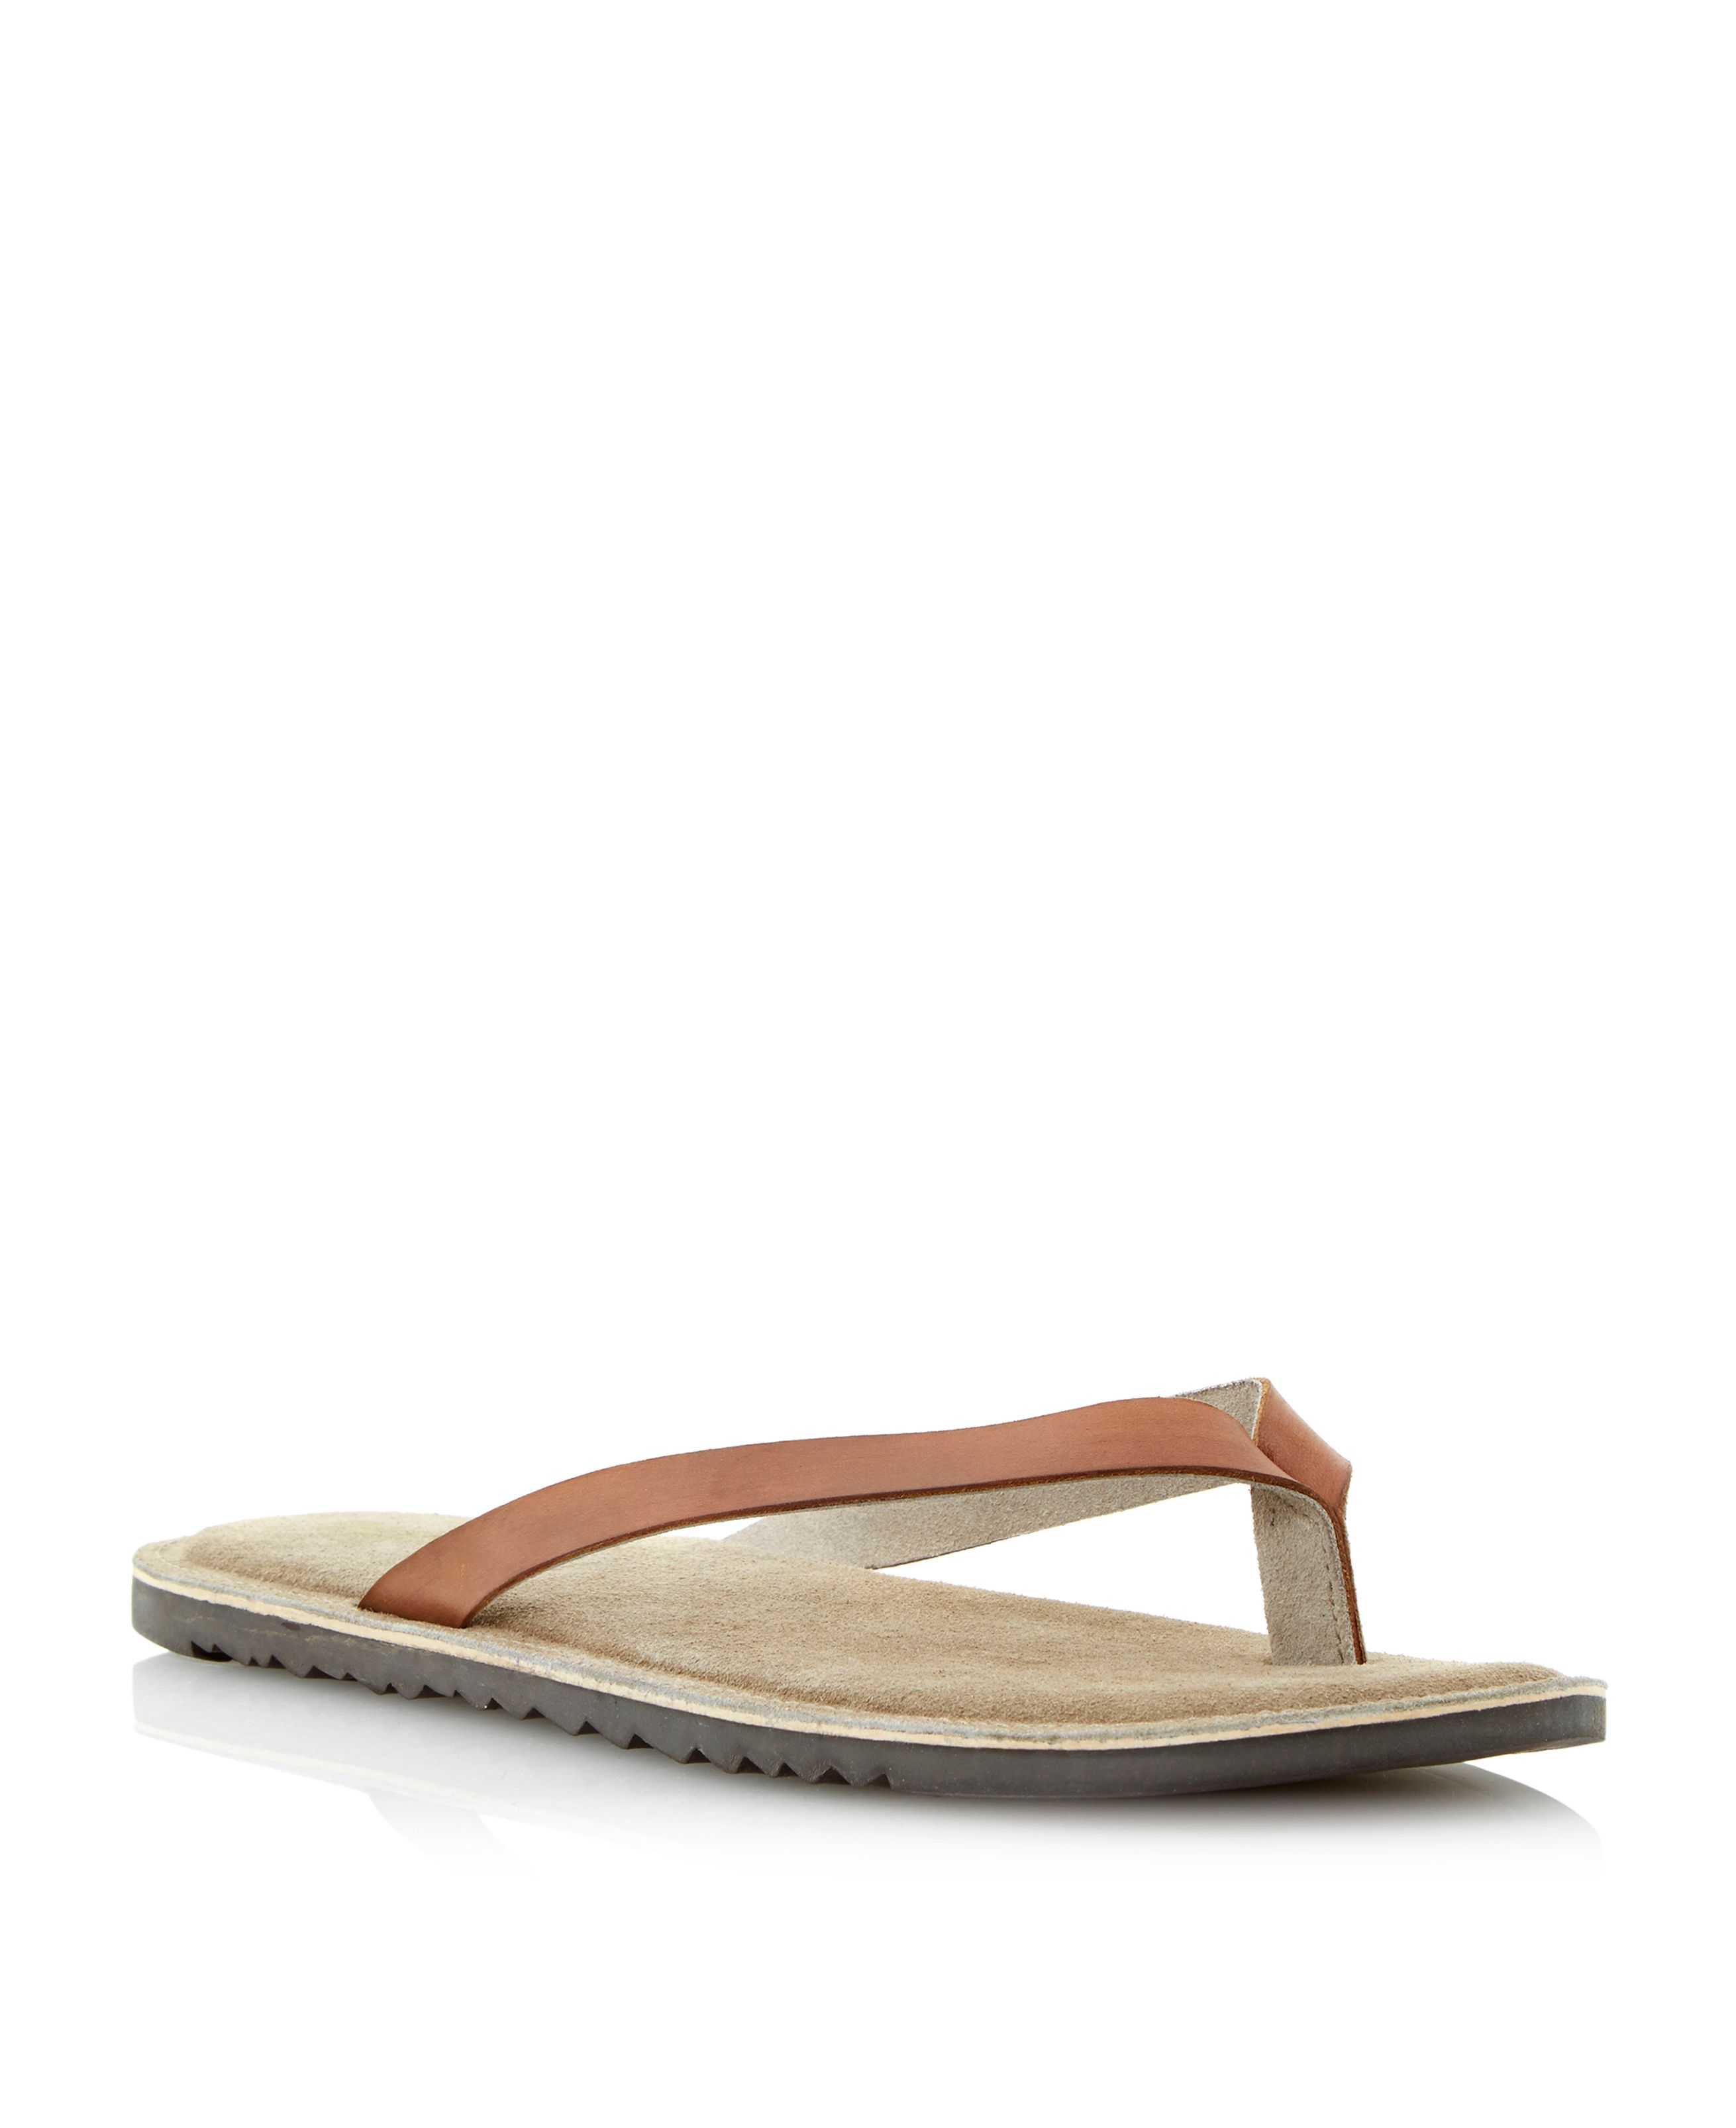 Franco sporty sole toe post sandals